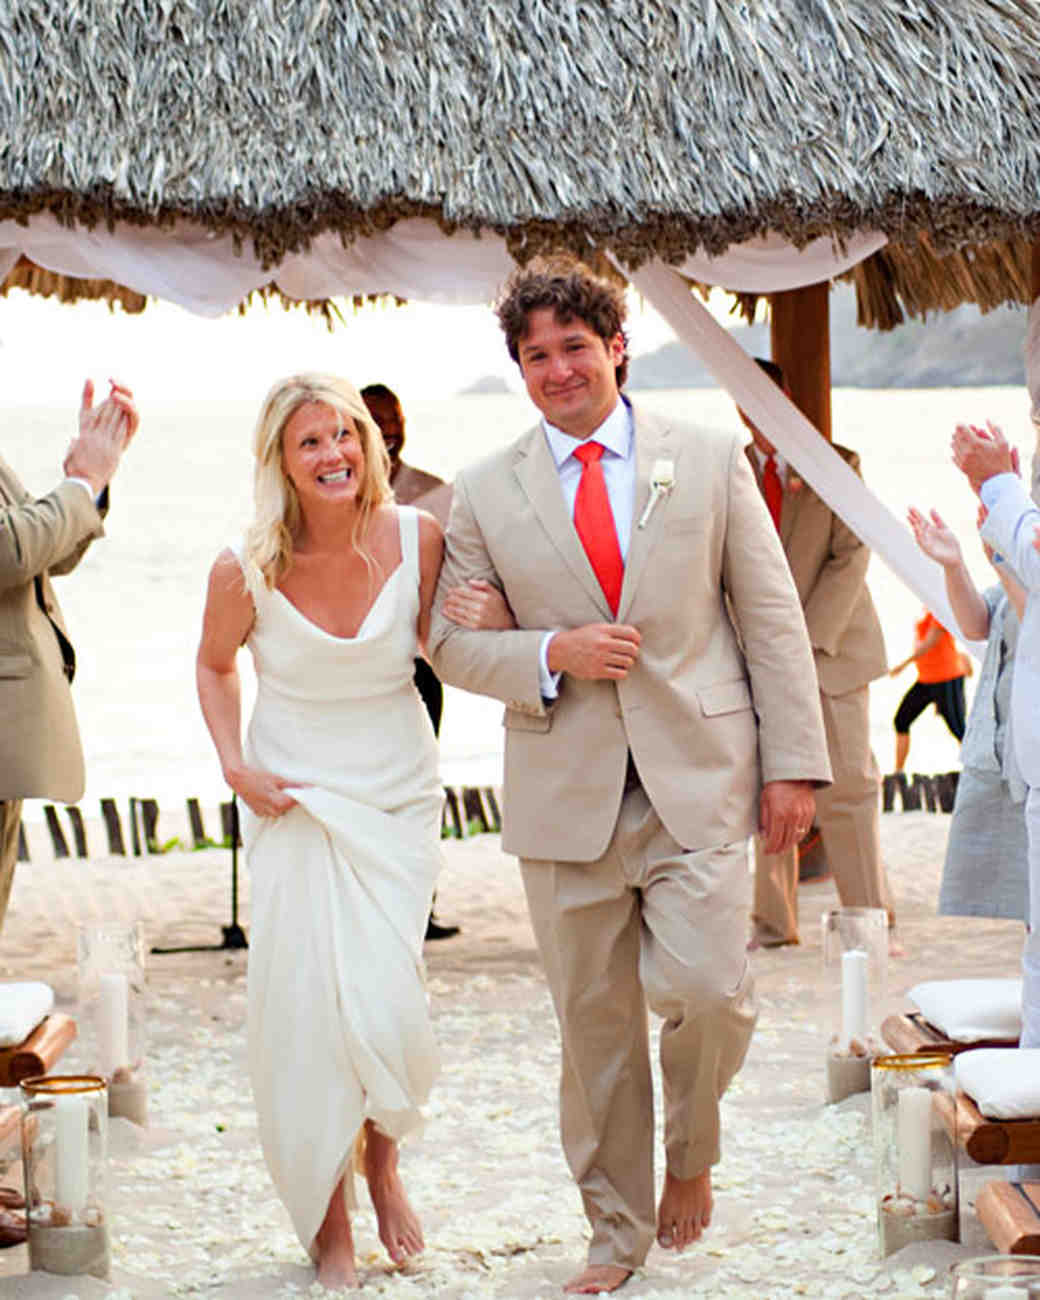 Destination Weddings In Mexico: An Orange-and-White Intimate Beach Destination Wedding In